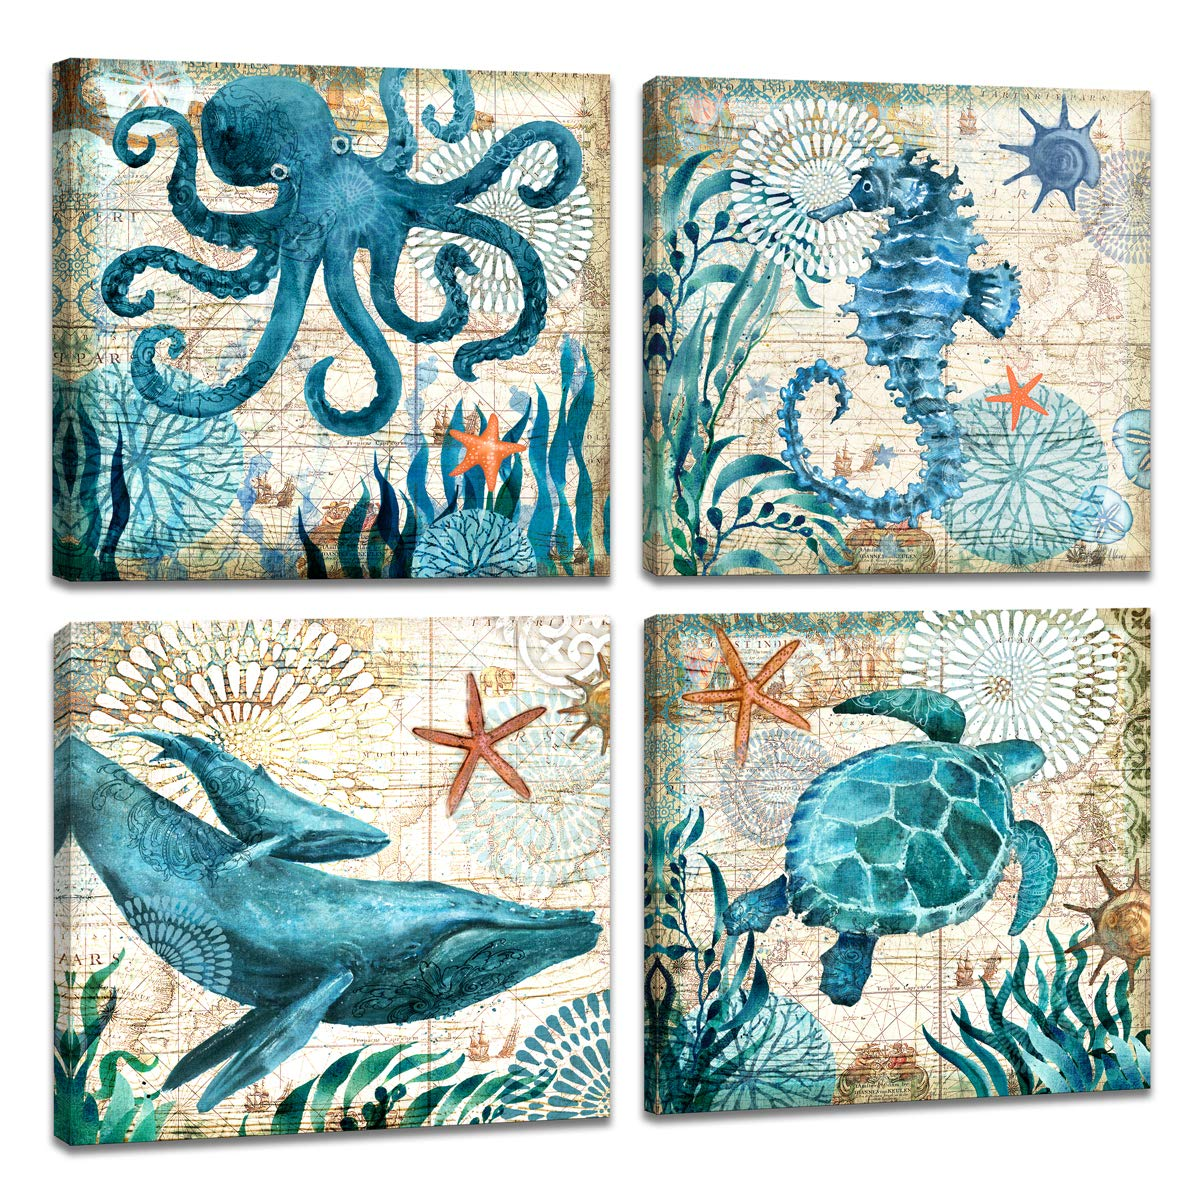 "4 Piece Canvas Wall Art Home Wall Decor Art Ocean Watercolor Sea World Animal Home Sea Turtle Seahorse Whale Octopus Pictures Modern Artwork Stretched and Framed Ready to Hang Size:12""x12""x4 Panels"